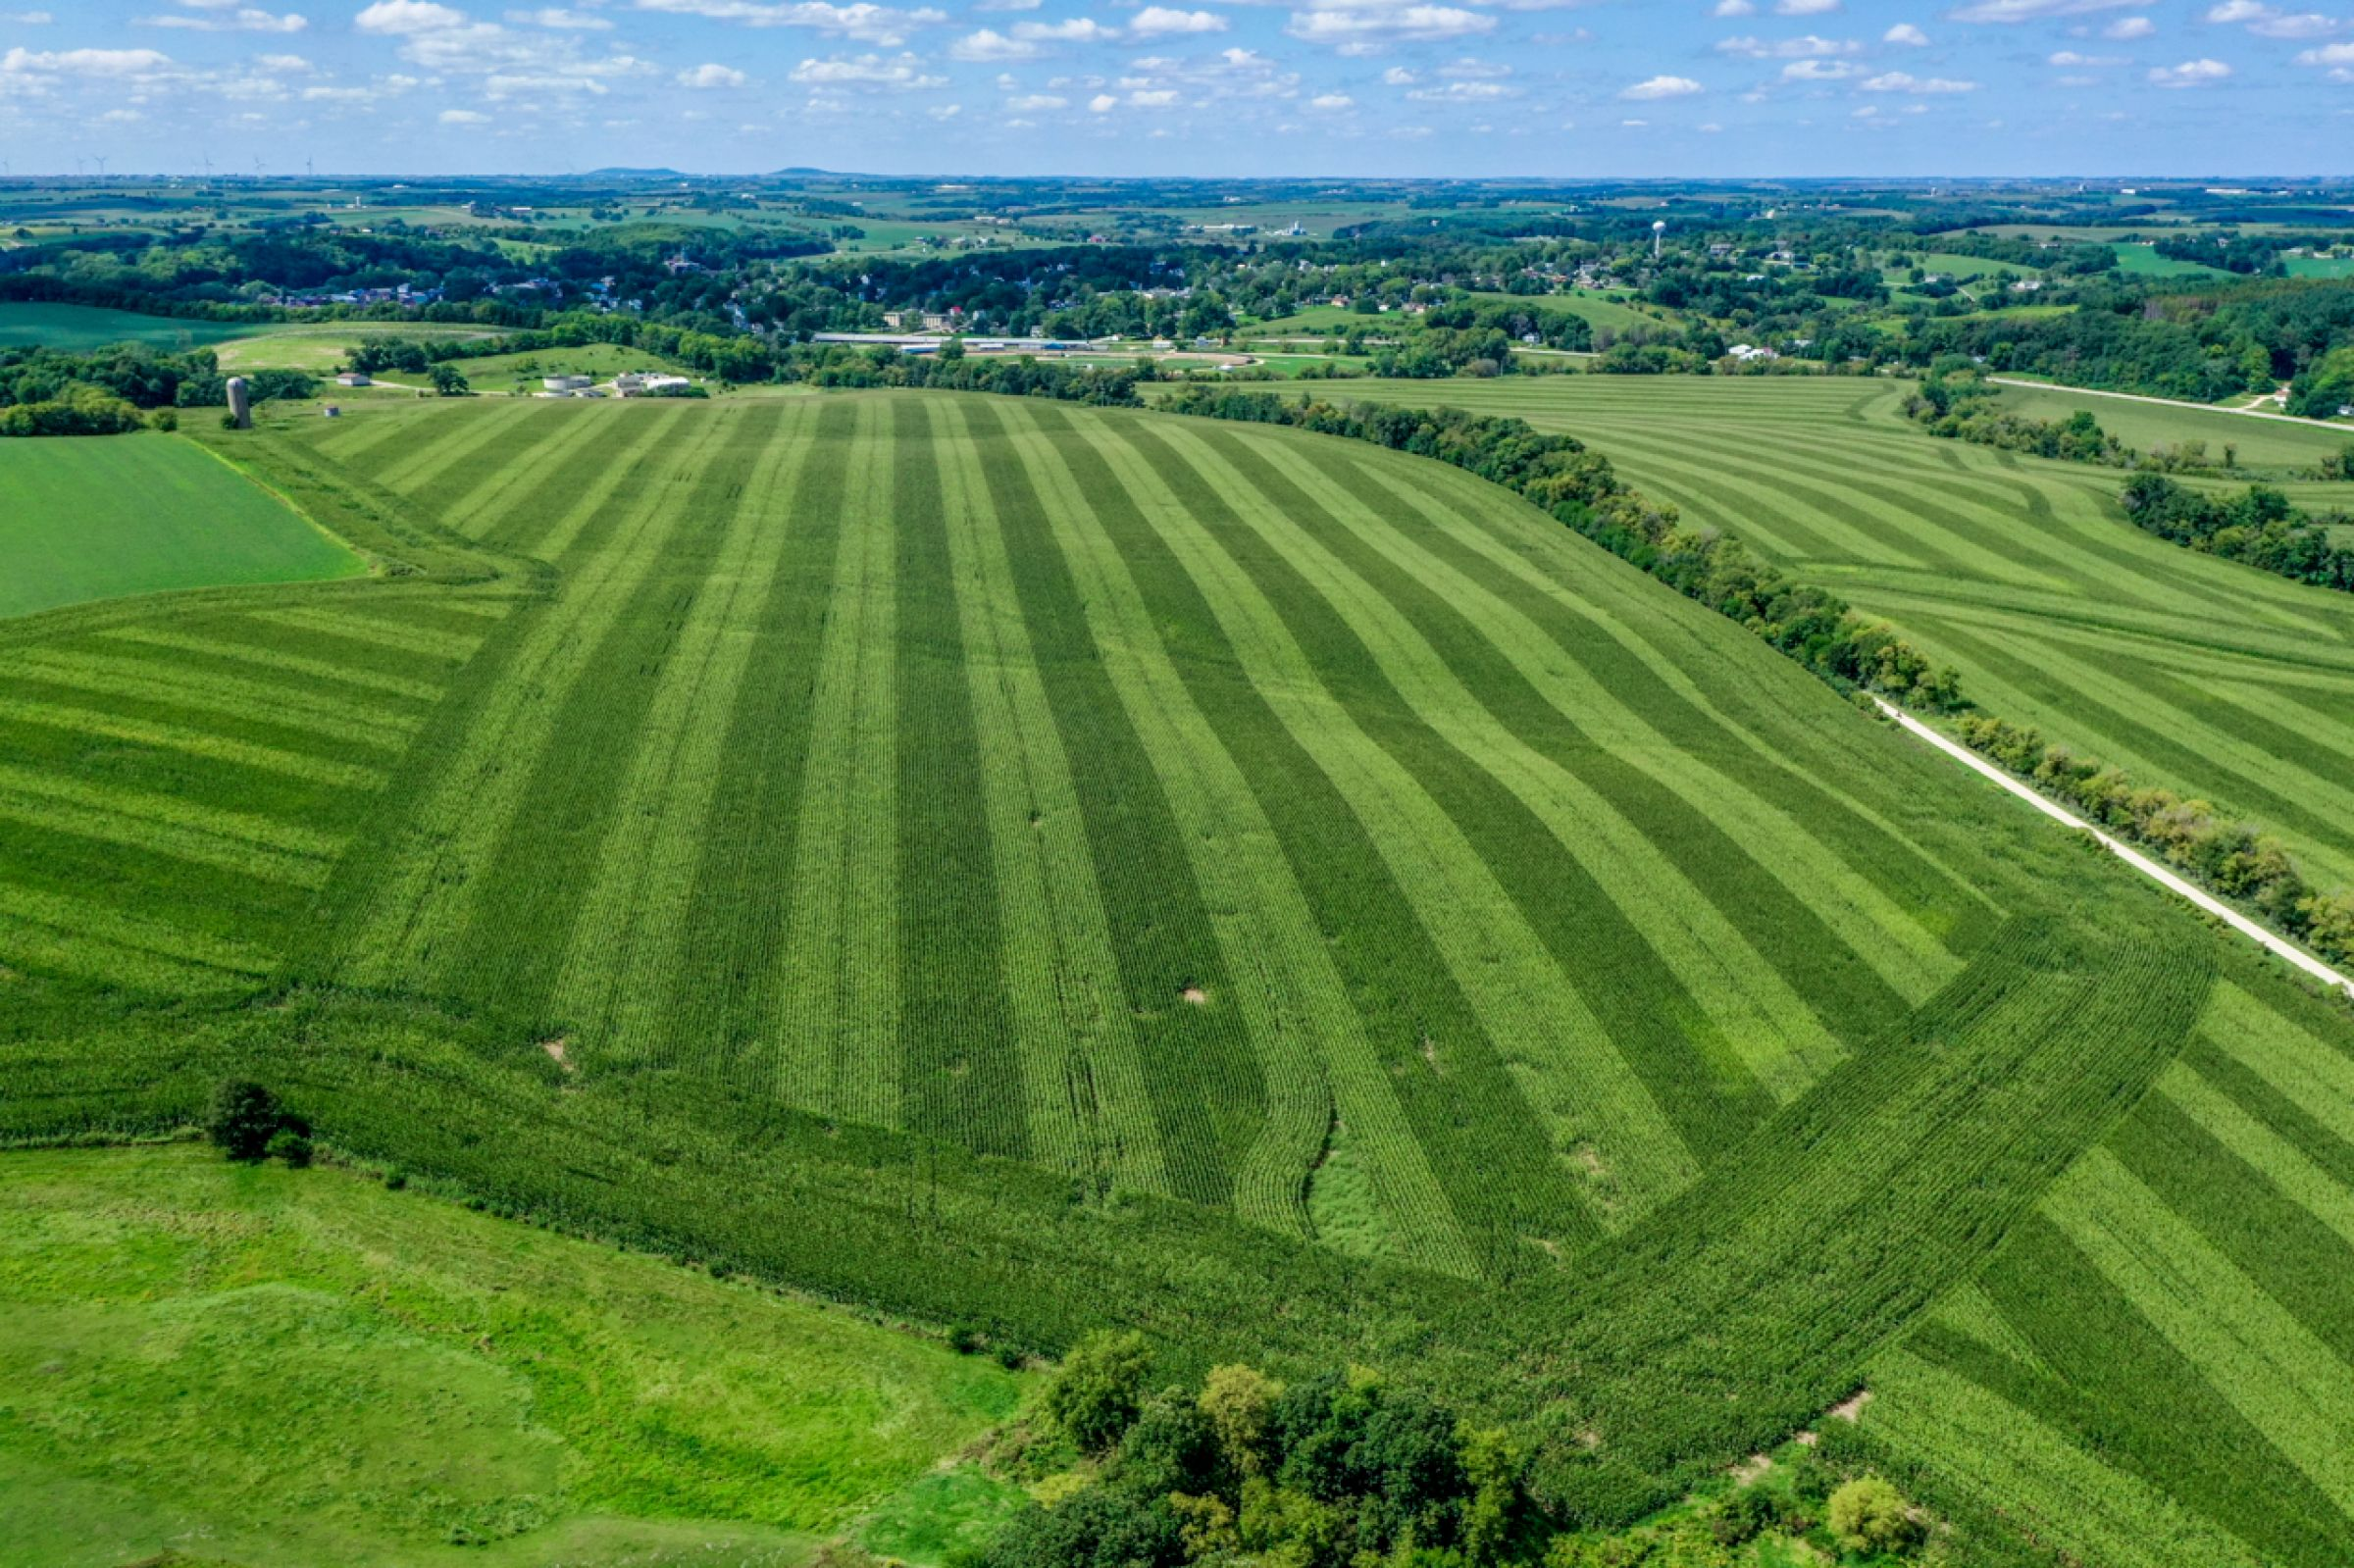 land-lafayette-county-wisconsin-120-acres-listing-number-15729-12-2021-09-03-204844.jpg